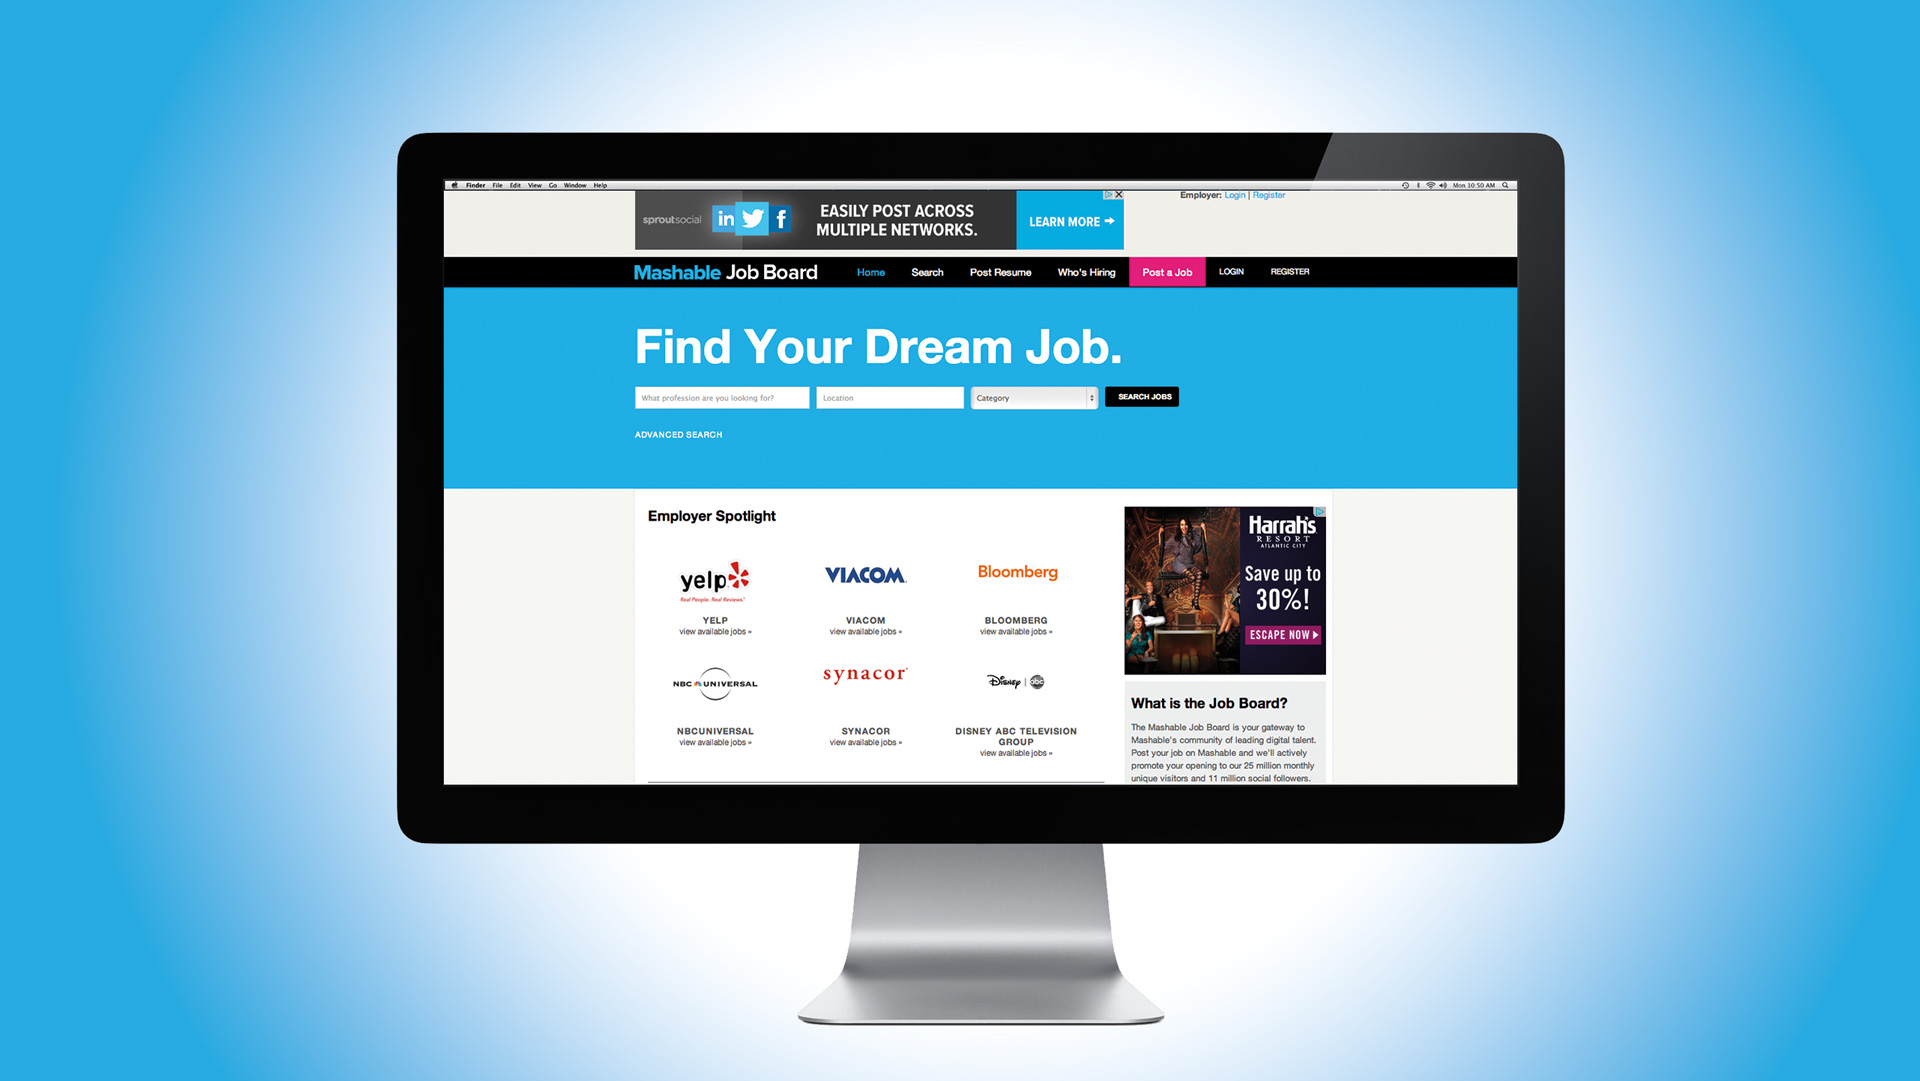 Mashable Job Board - Look For Your Next Career Move, Post Jobs And ...